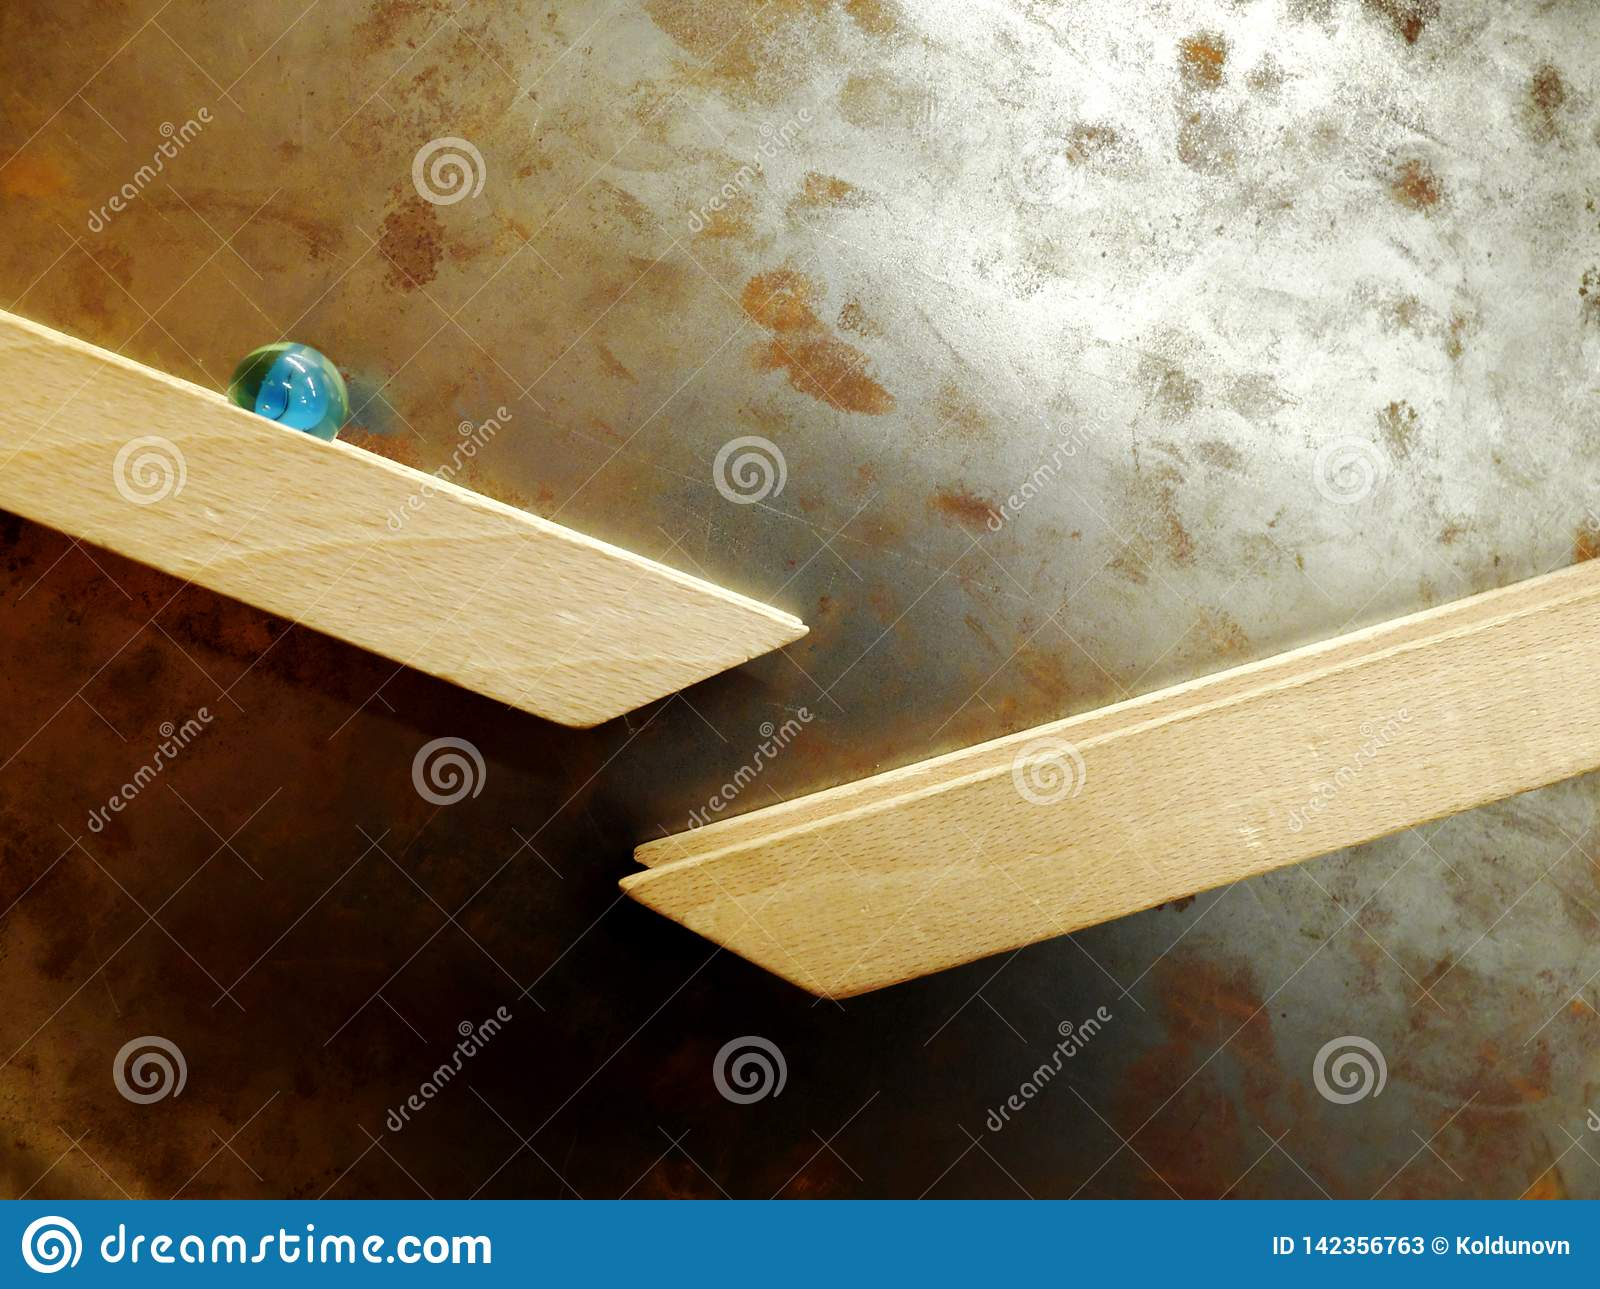 Marble ball rolling down along the wooden rail magnetically attached to the metal rusty wall. The concept of downward movement and